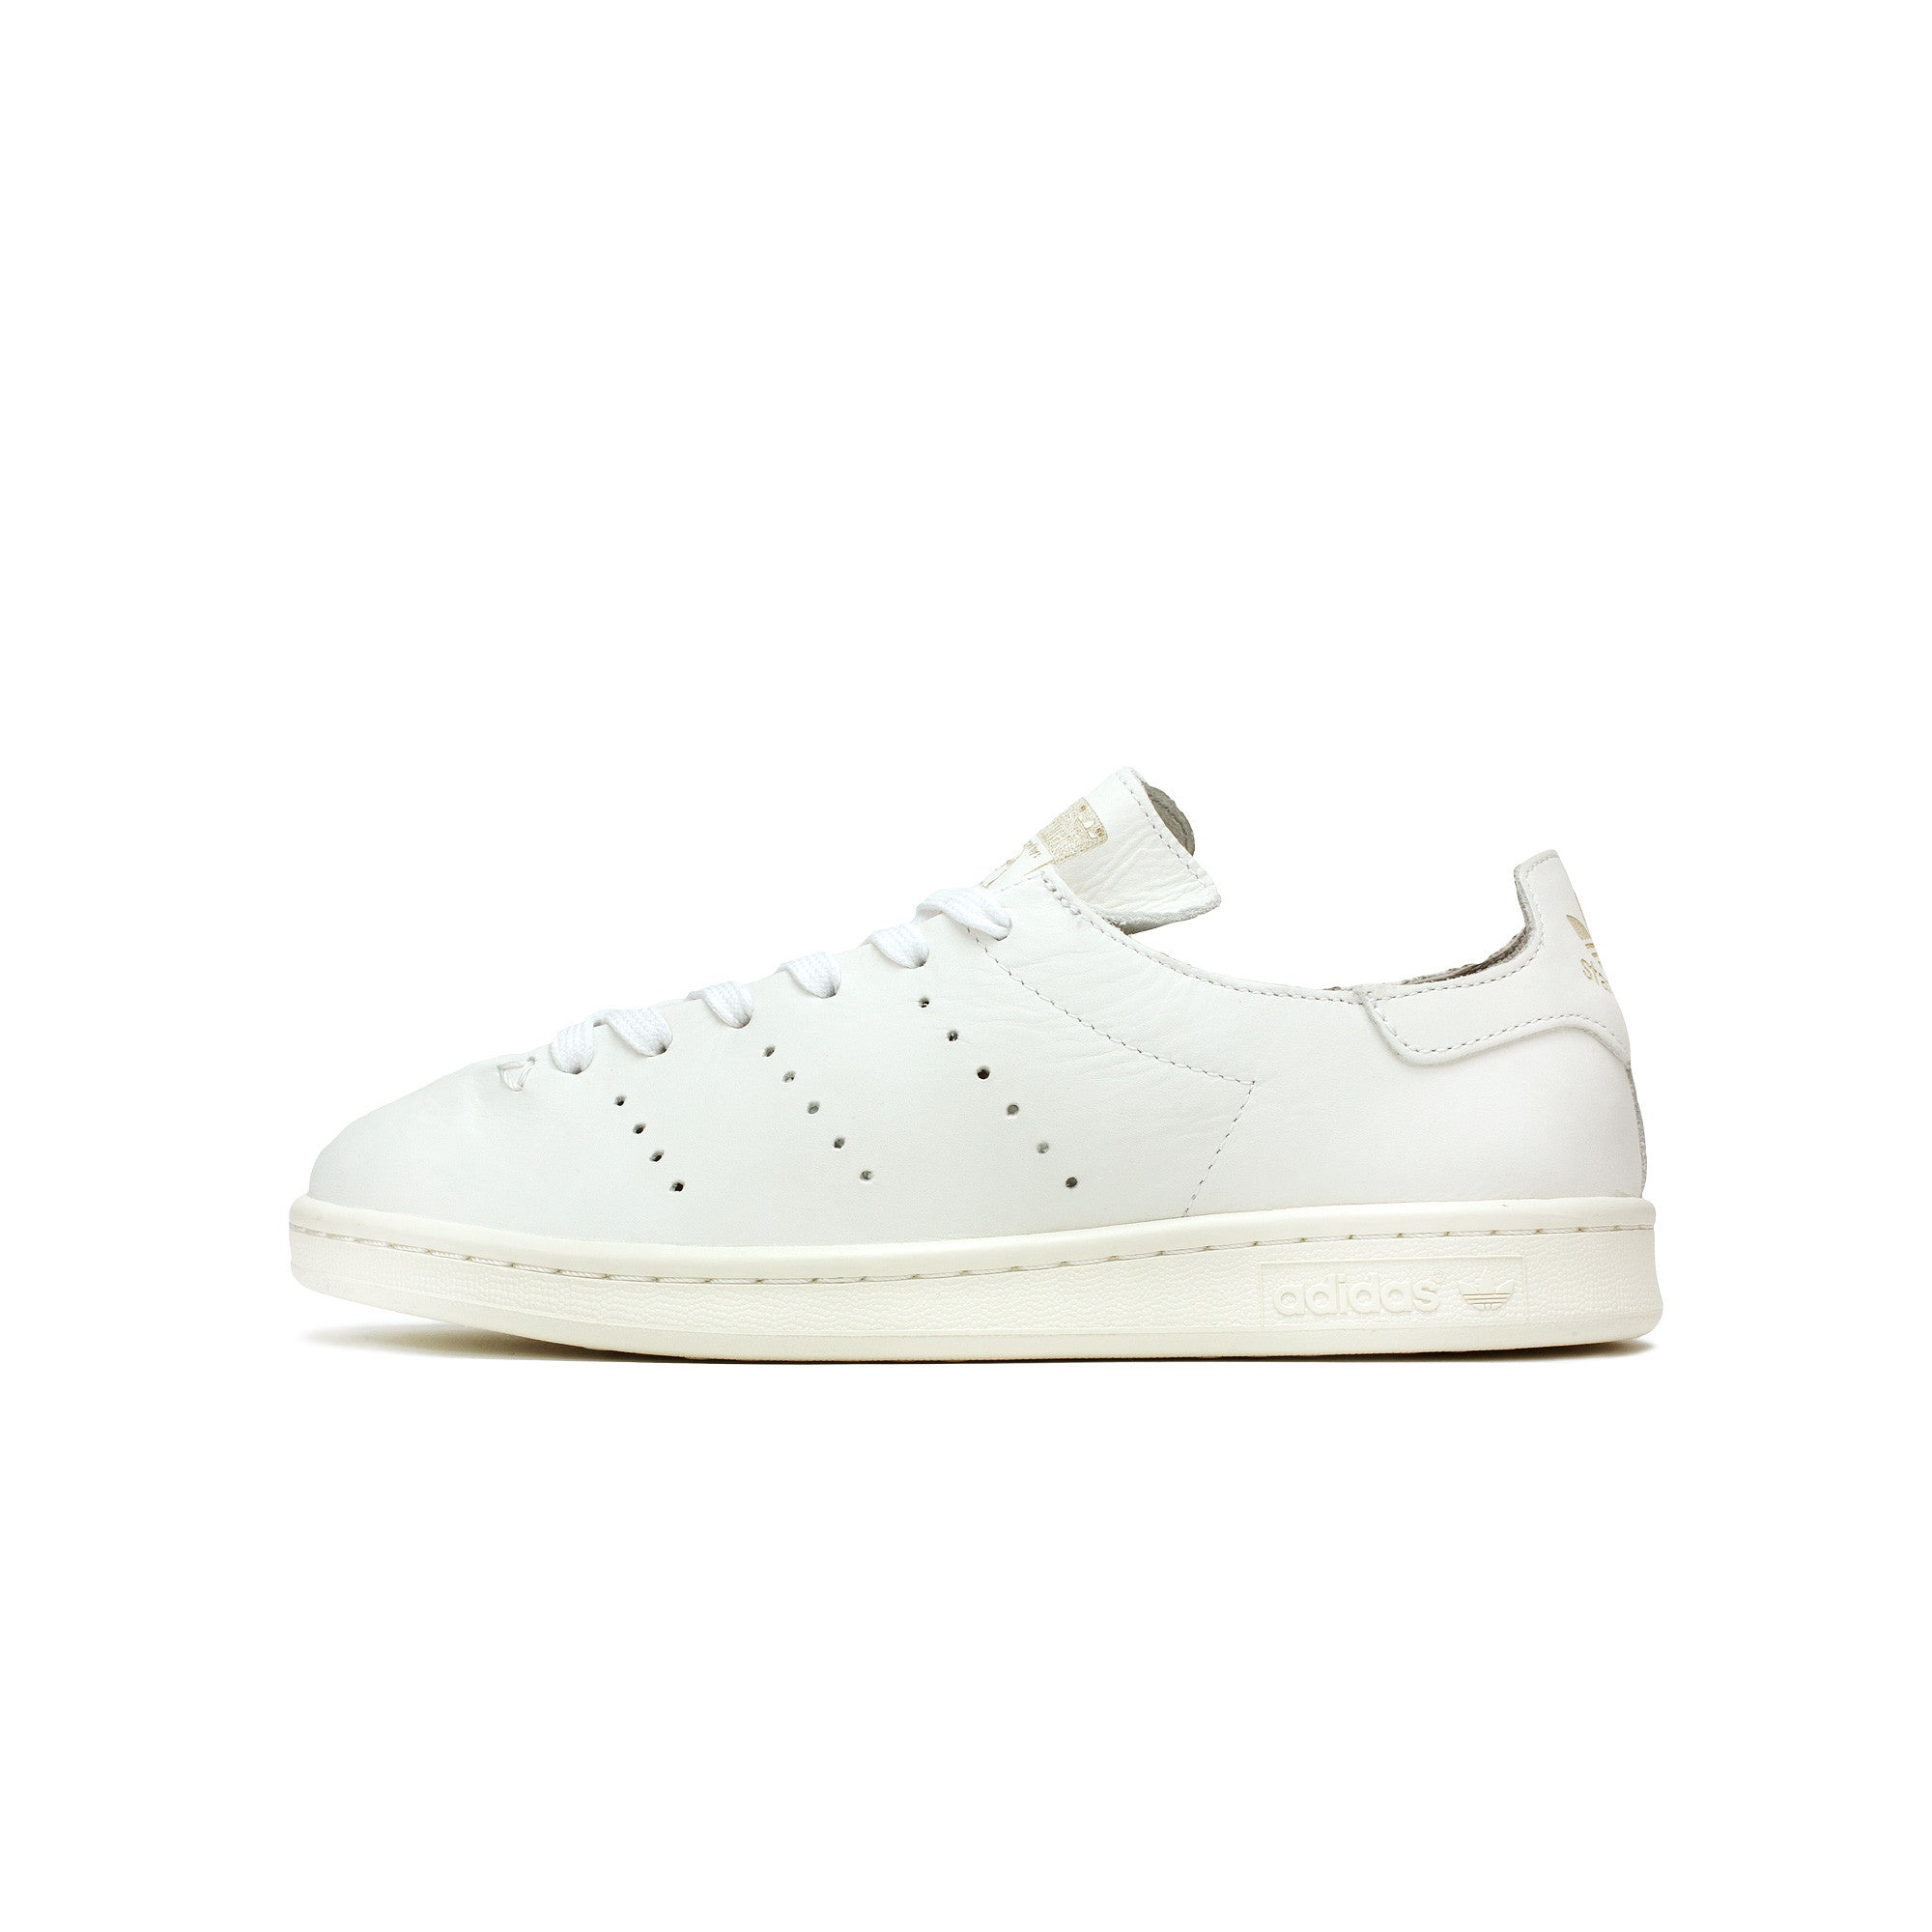 Buy adidas stan smith leather sock mens sale > OFF45% Discounted